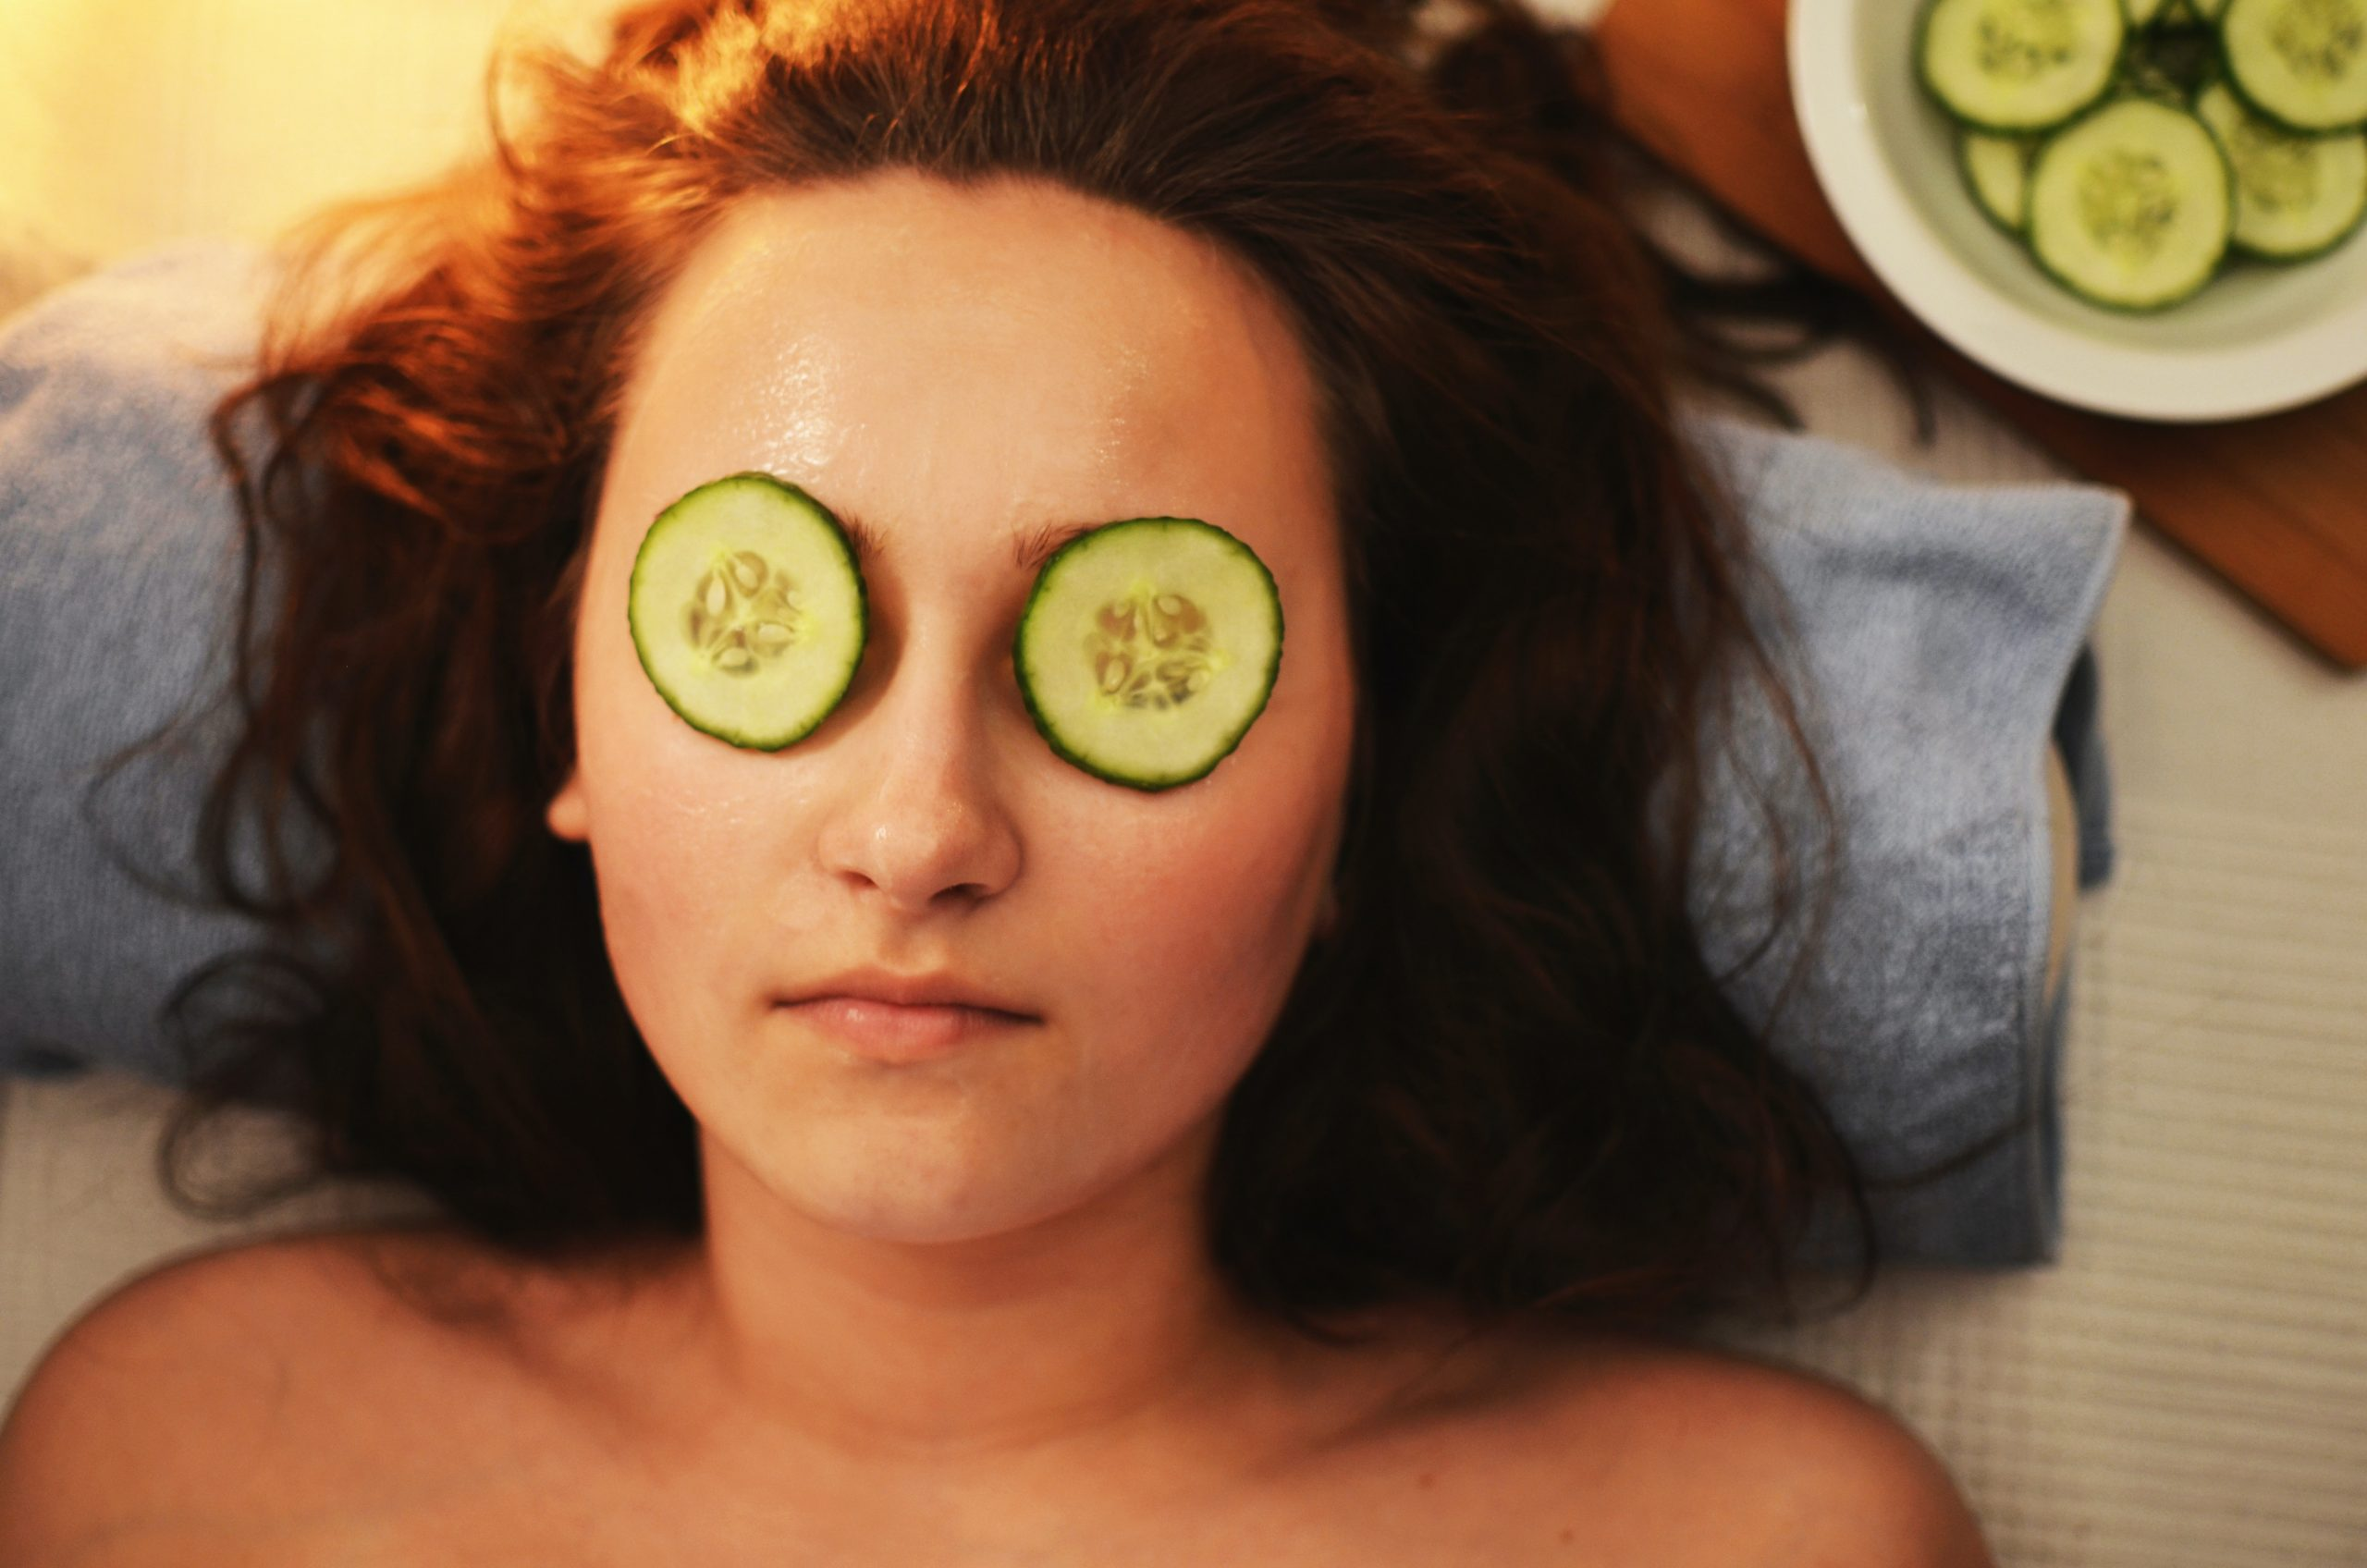 Beauty rituals that are vital while quarantined